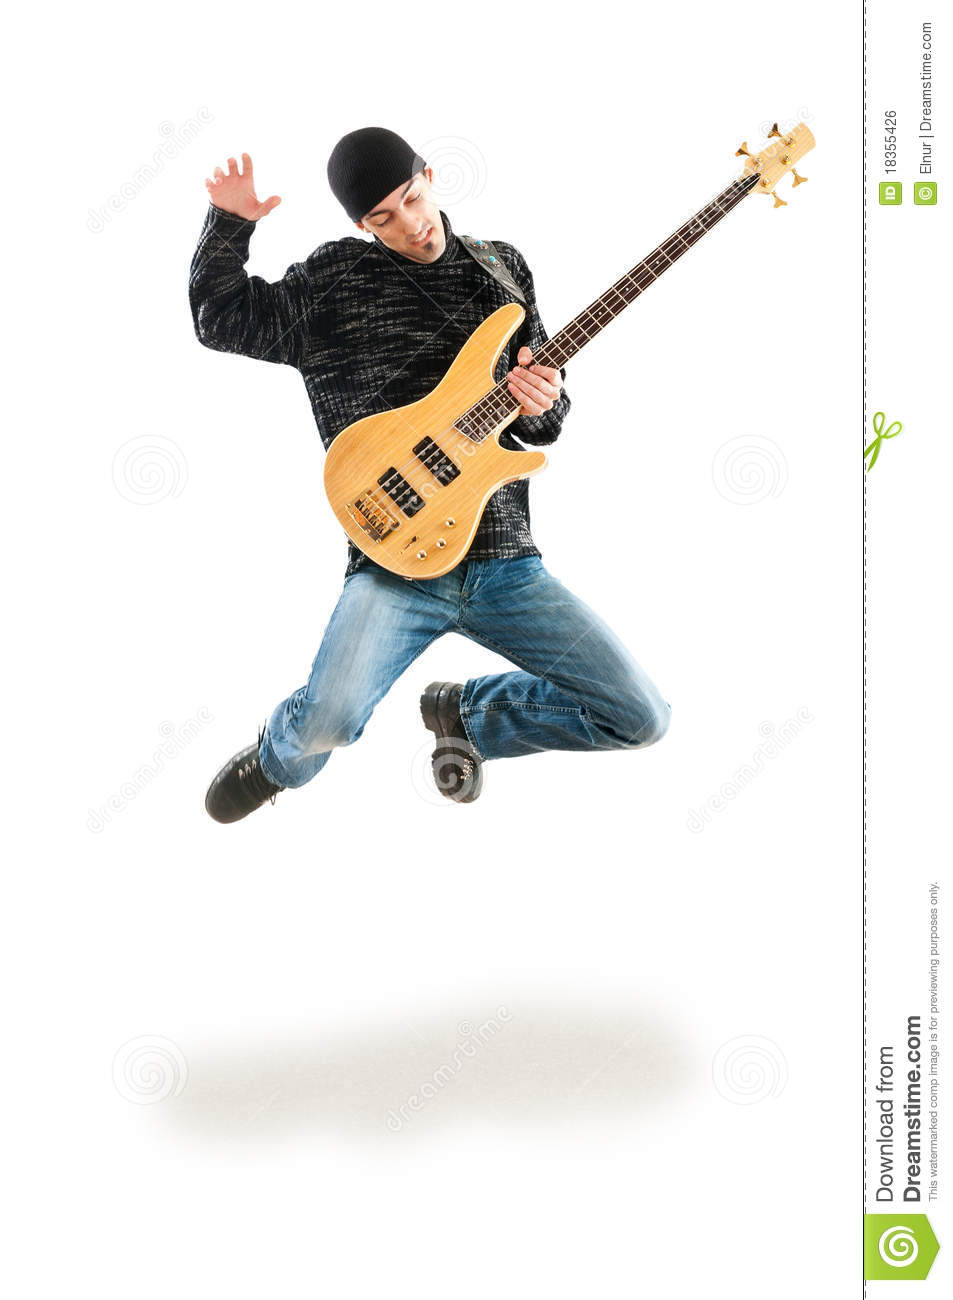 how to play jump on guitar